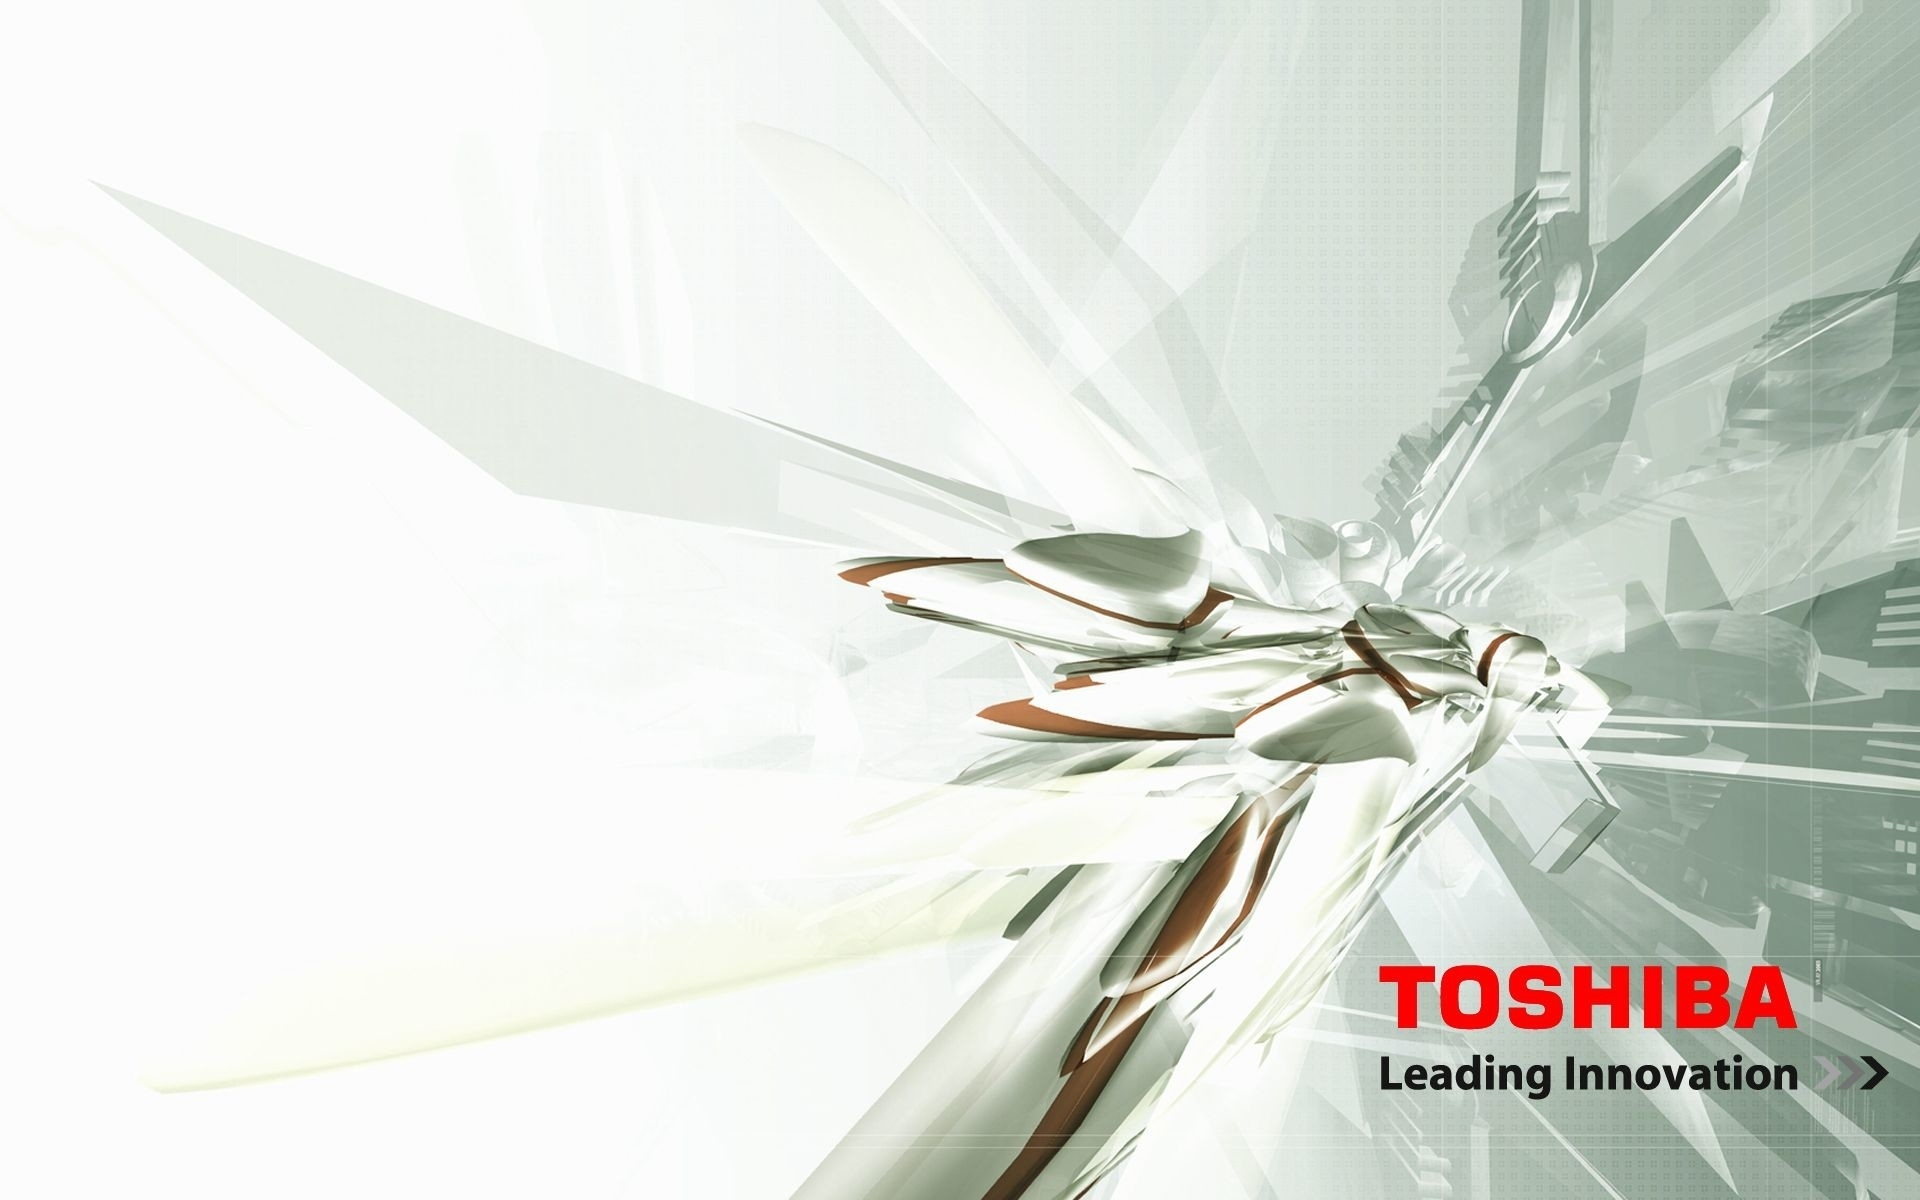 toshiba wallpaper windows 10 (68+ images)